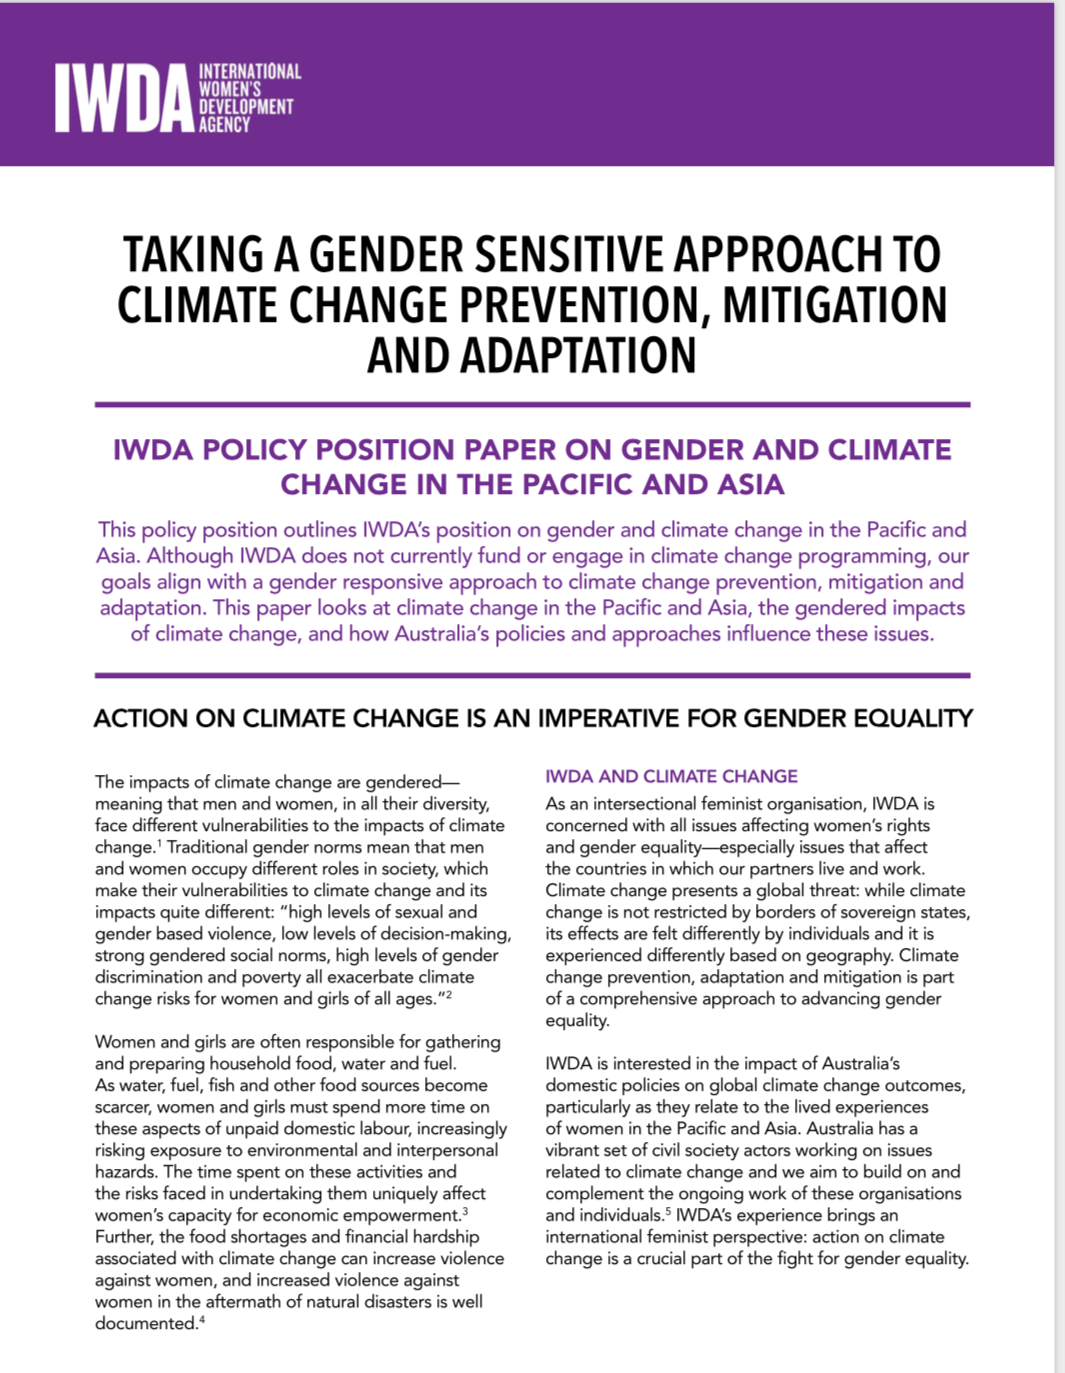 IWDA climate change policy paper